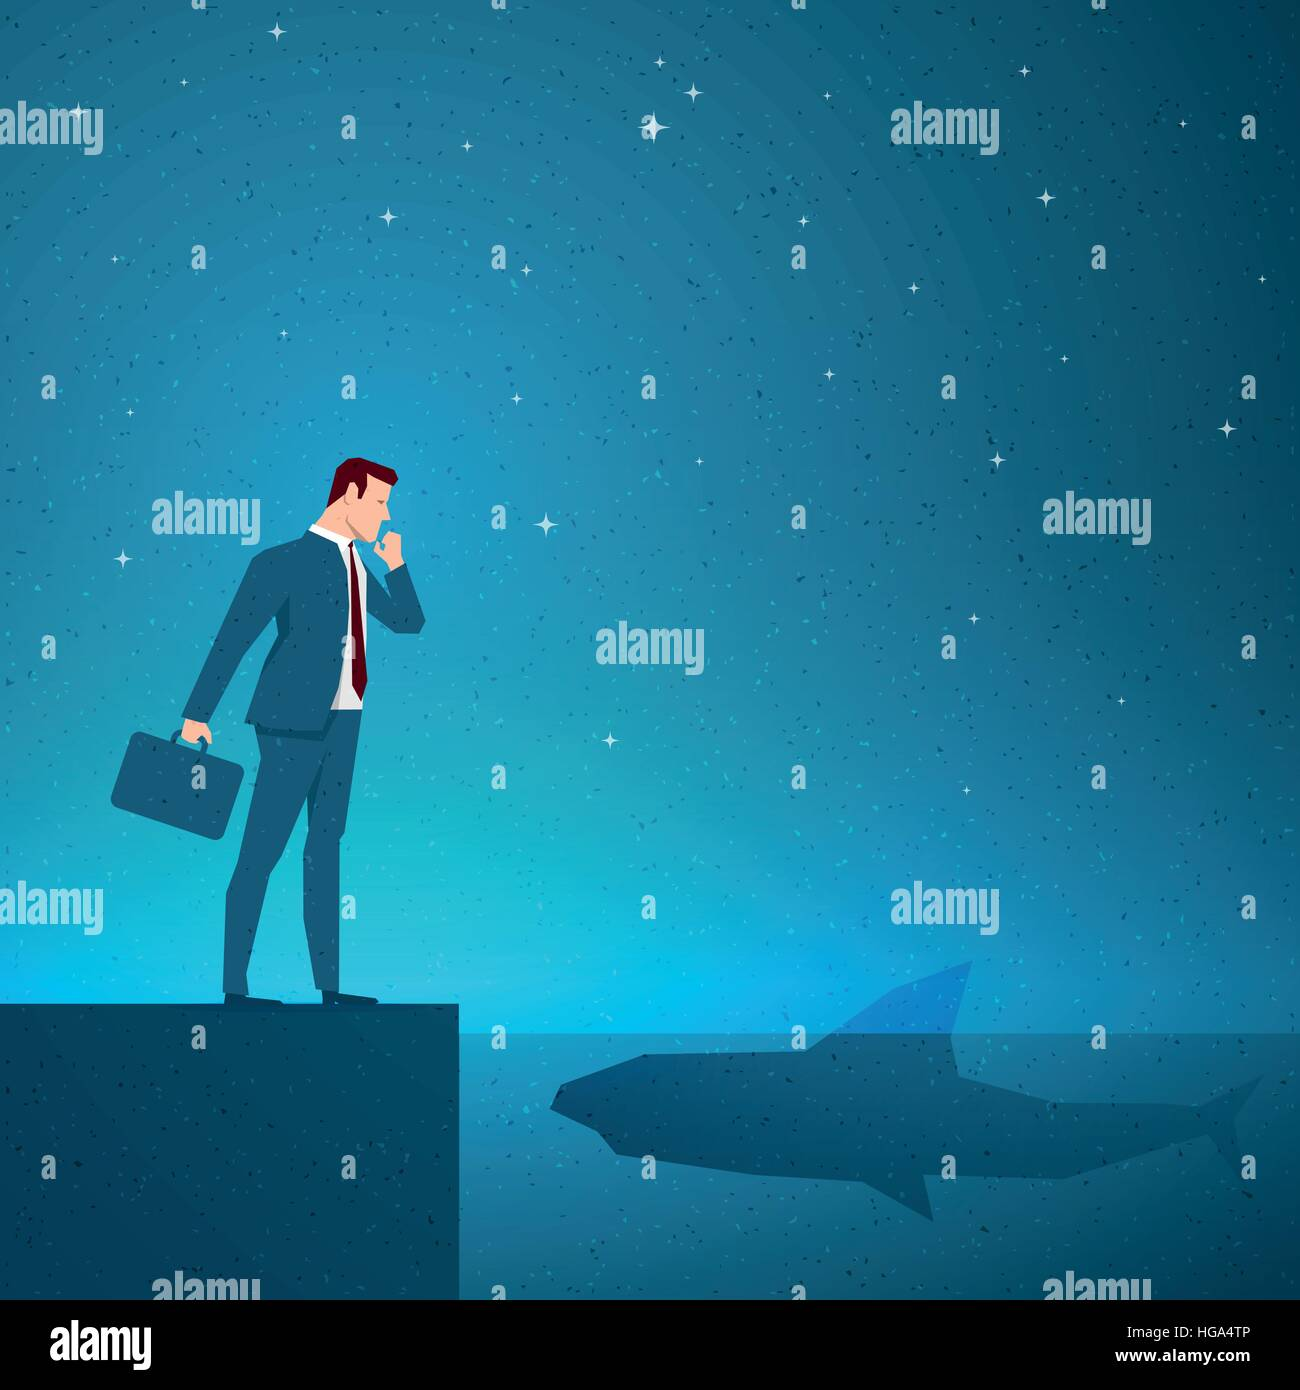 Business concept vector illustration. Trouble, risk, danger, crisis concept. Elements are layered separately in - Stock Vector